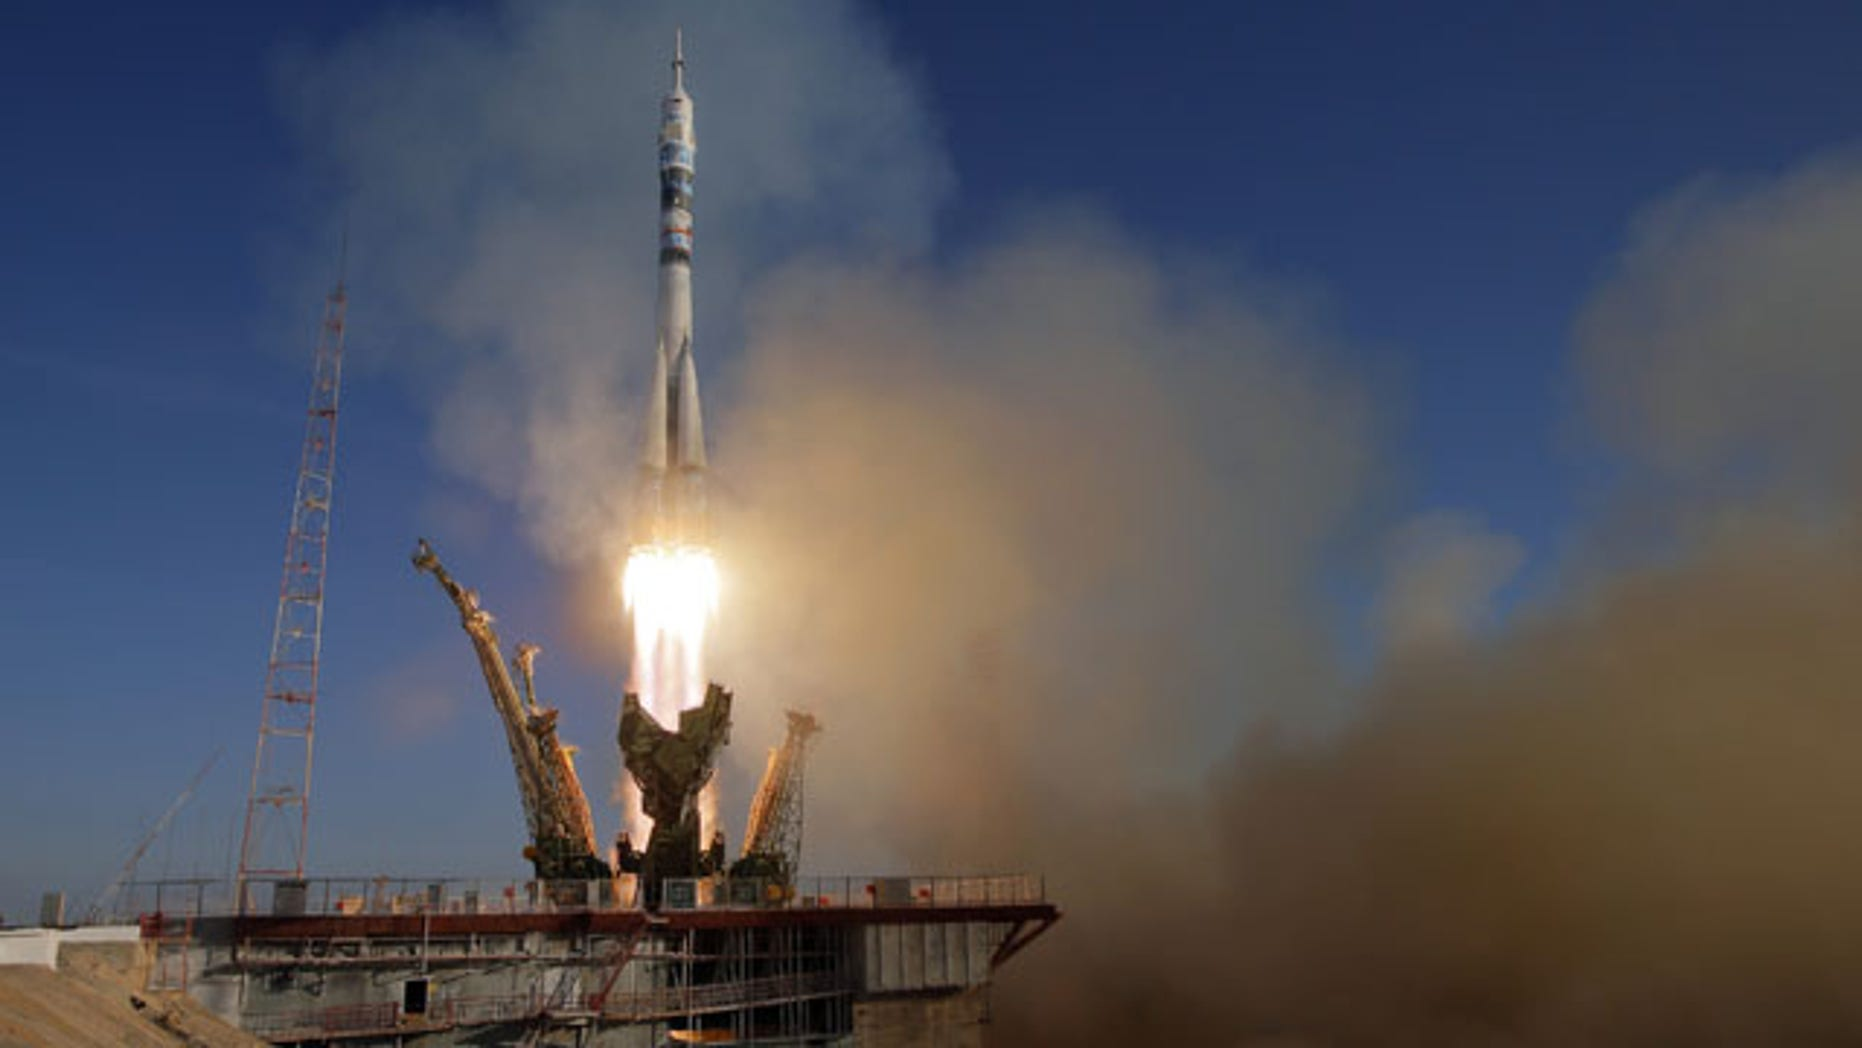 November 7, 2013: The Soyuz-FG rocket booster with Soyuz TMA-11M space ship carrying new crew to the International Space Station, ISS, blasts off at the Russian leased Baikonur cosmodrome, Kazakhstan. The rocket carrying the Olympic flame successfully blasted off Thursday from earth ahead of the Sochi 2014 Winter Games. (AP Photo/Dmitry Lovetsky)